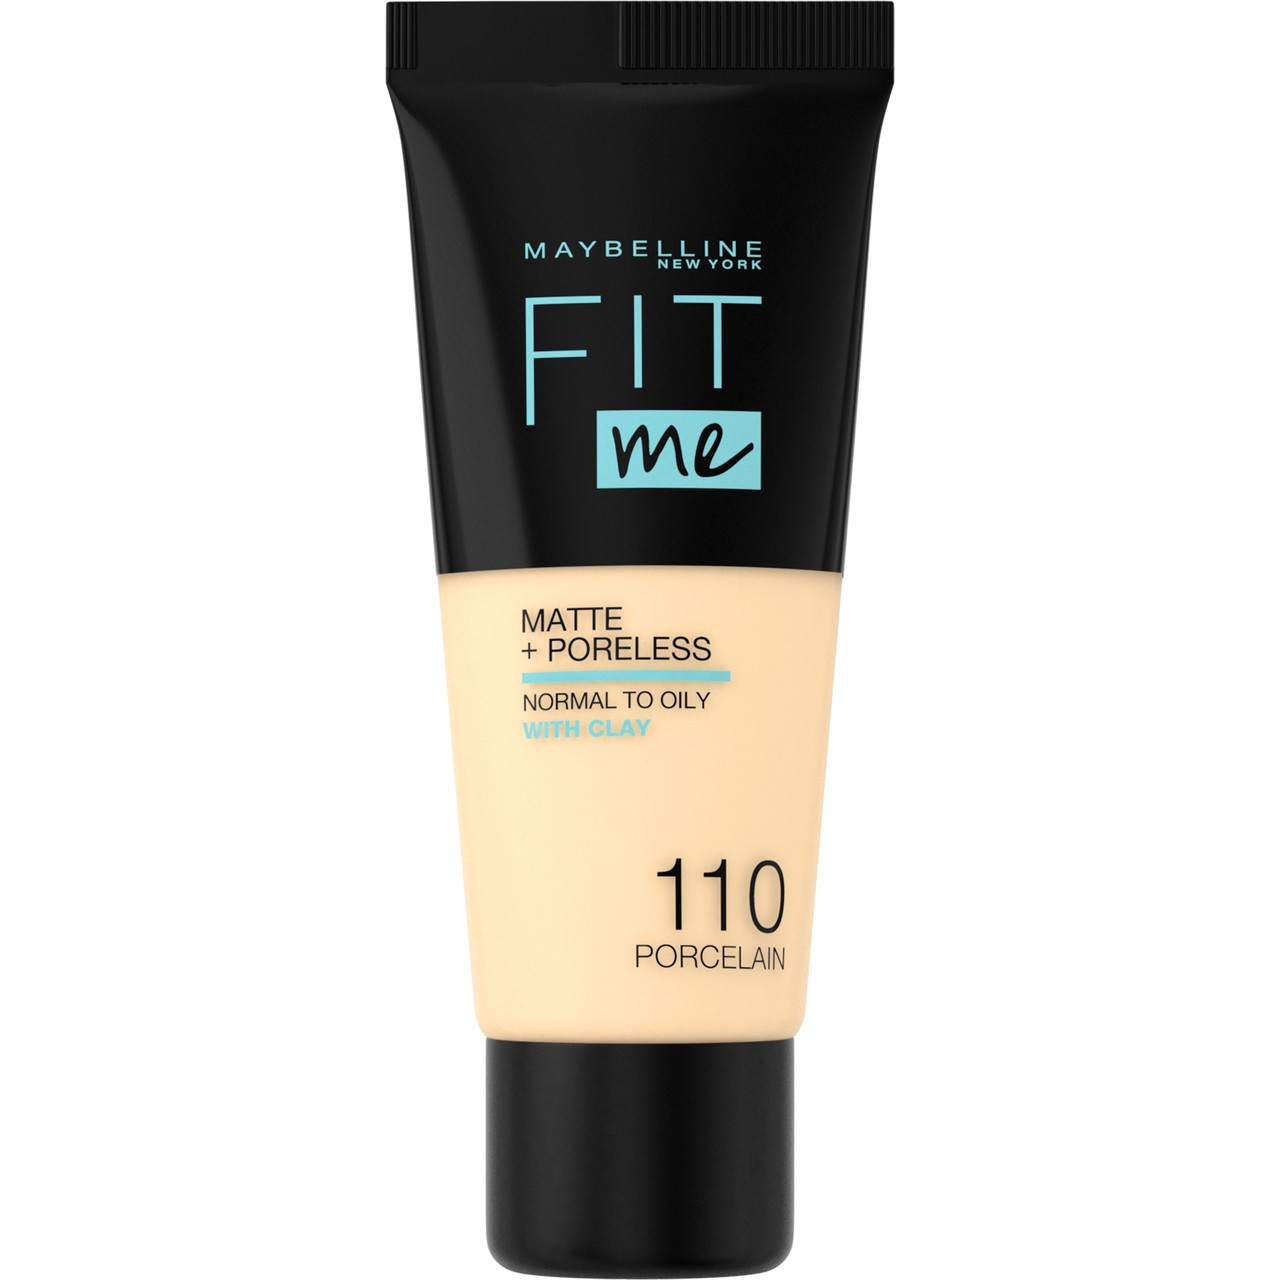 Maybelline - Base Liquida Fit Me Matte & Poreless -  110 - Porcelain